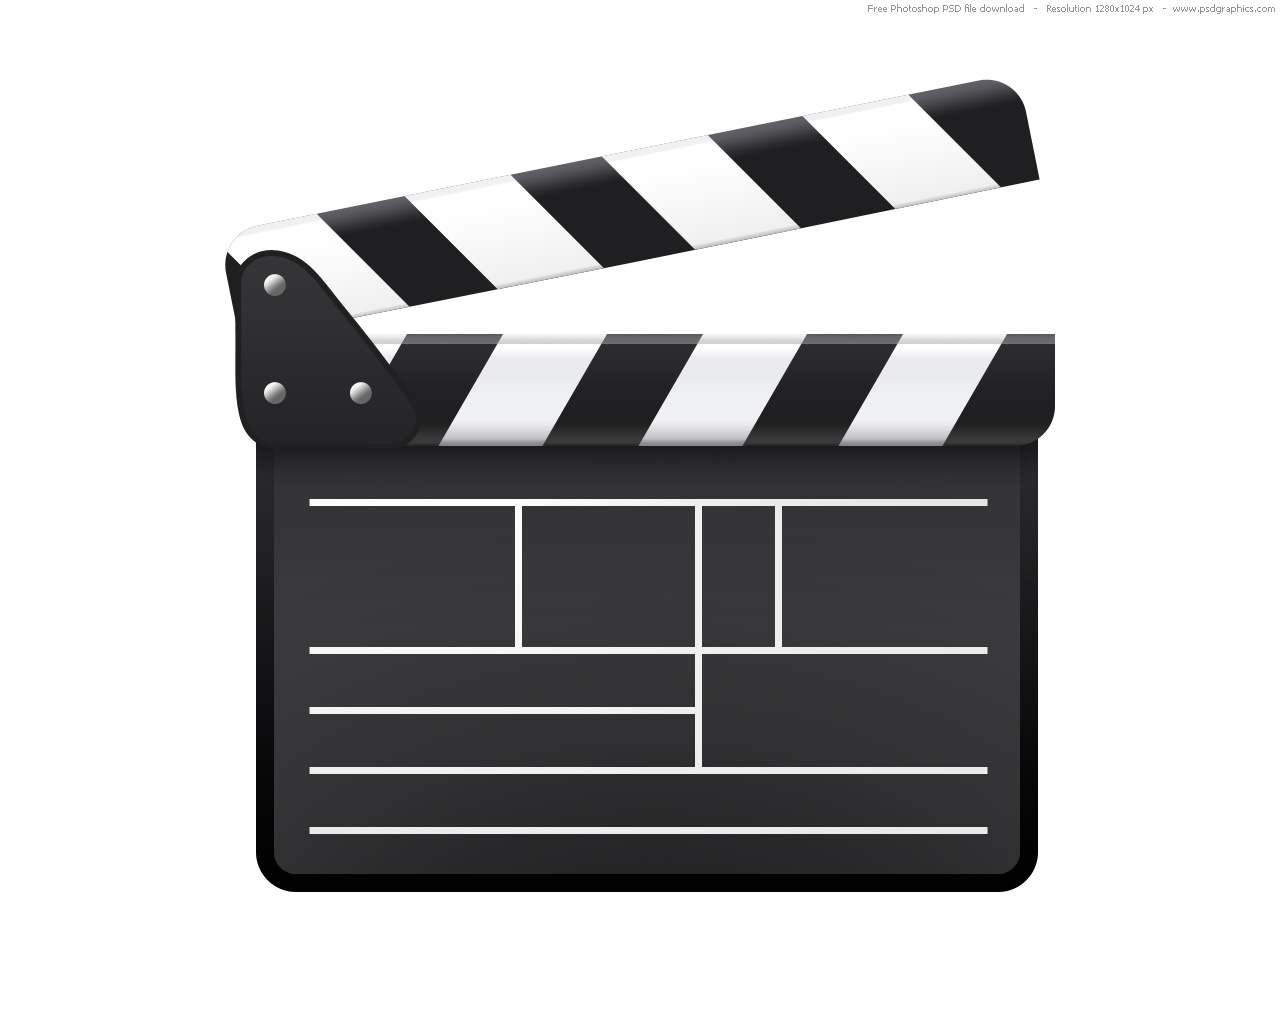 Full size – JPG preview: Clapboard icon